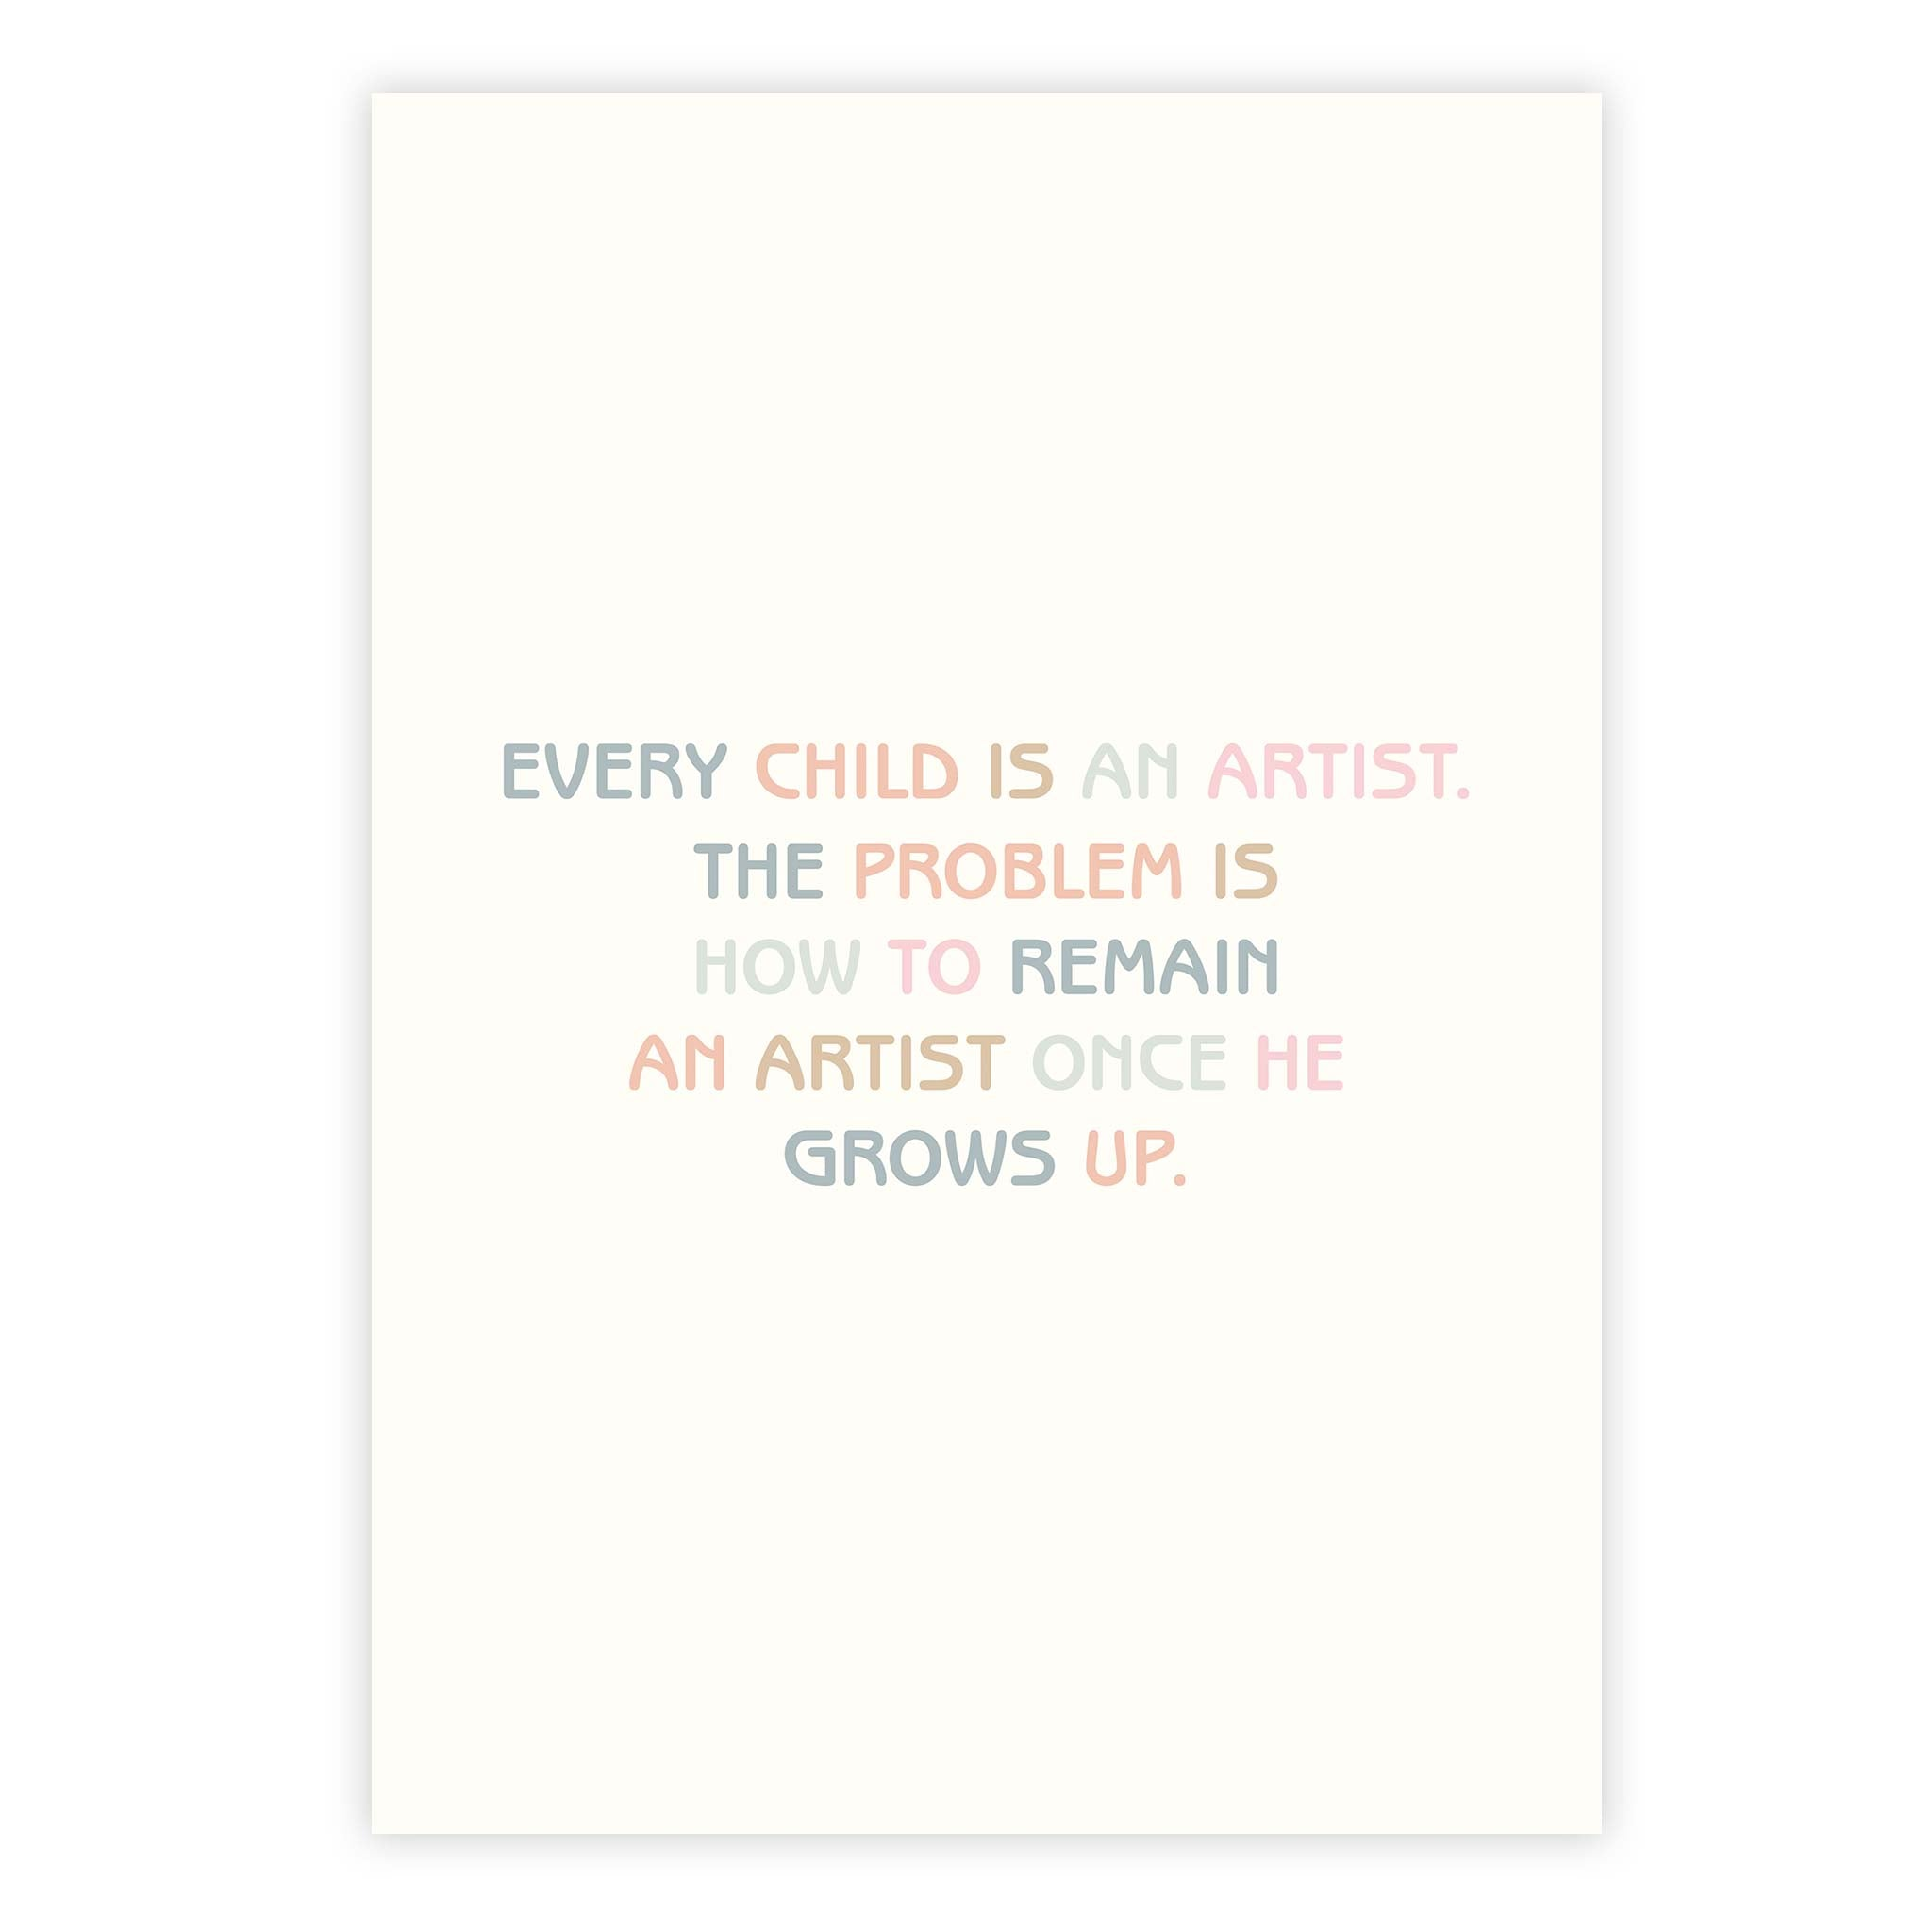 Every child is an artist. The problem is how to remain an artist once he grows up